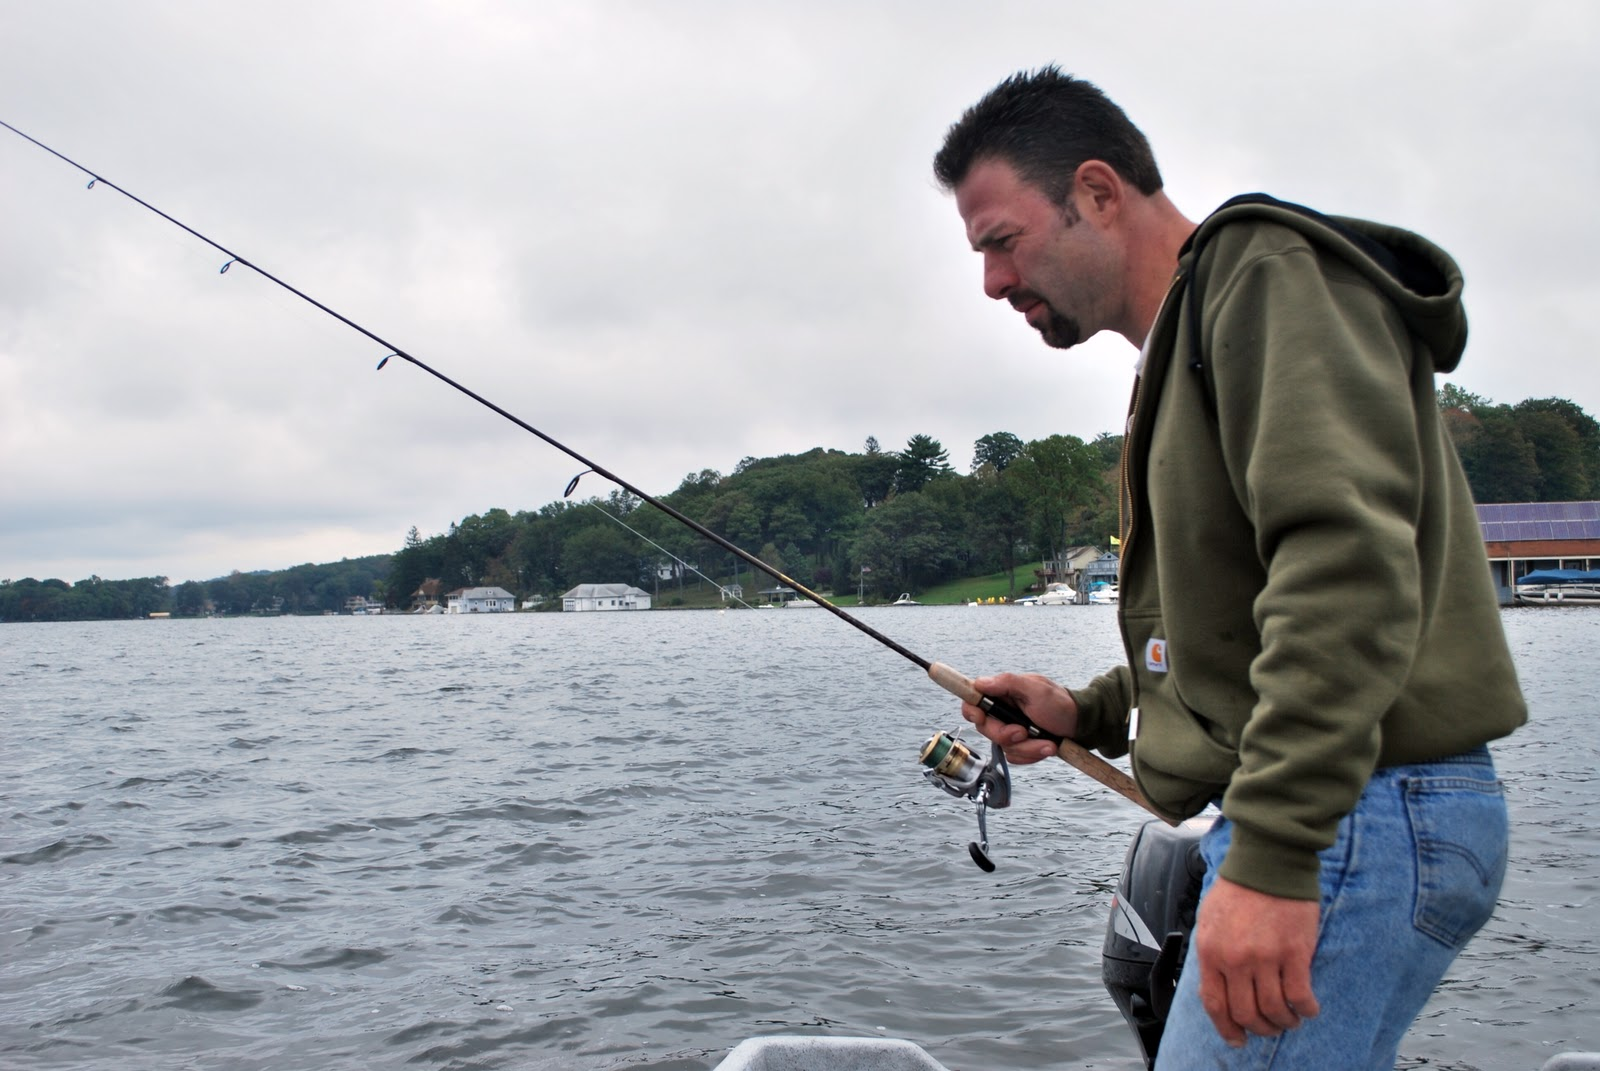 Fishing in new jersey lake hopatcong vertical walleye for Lake hopatcong fishing